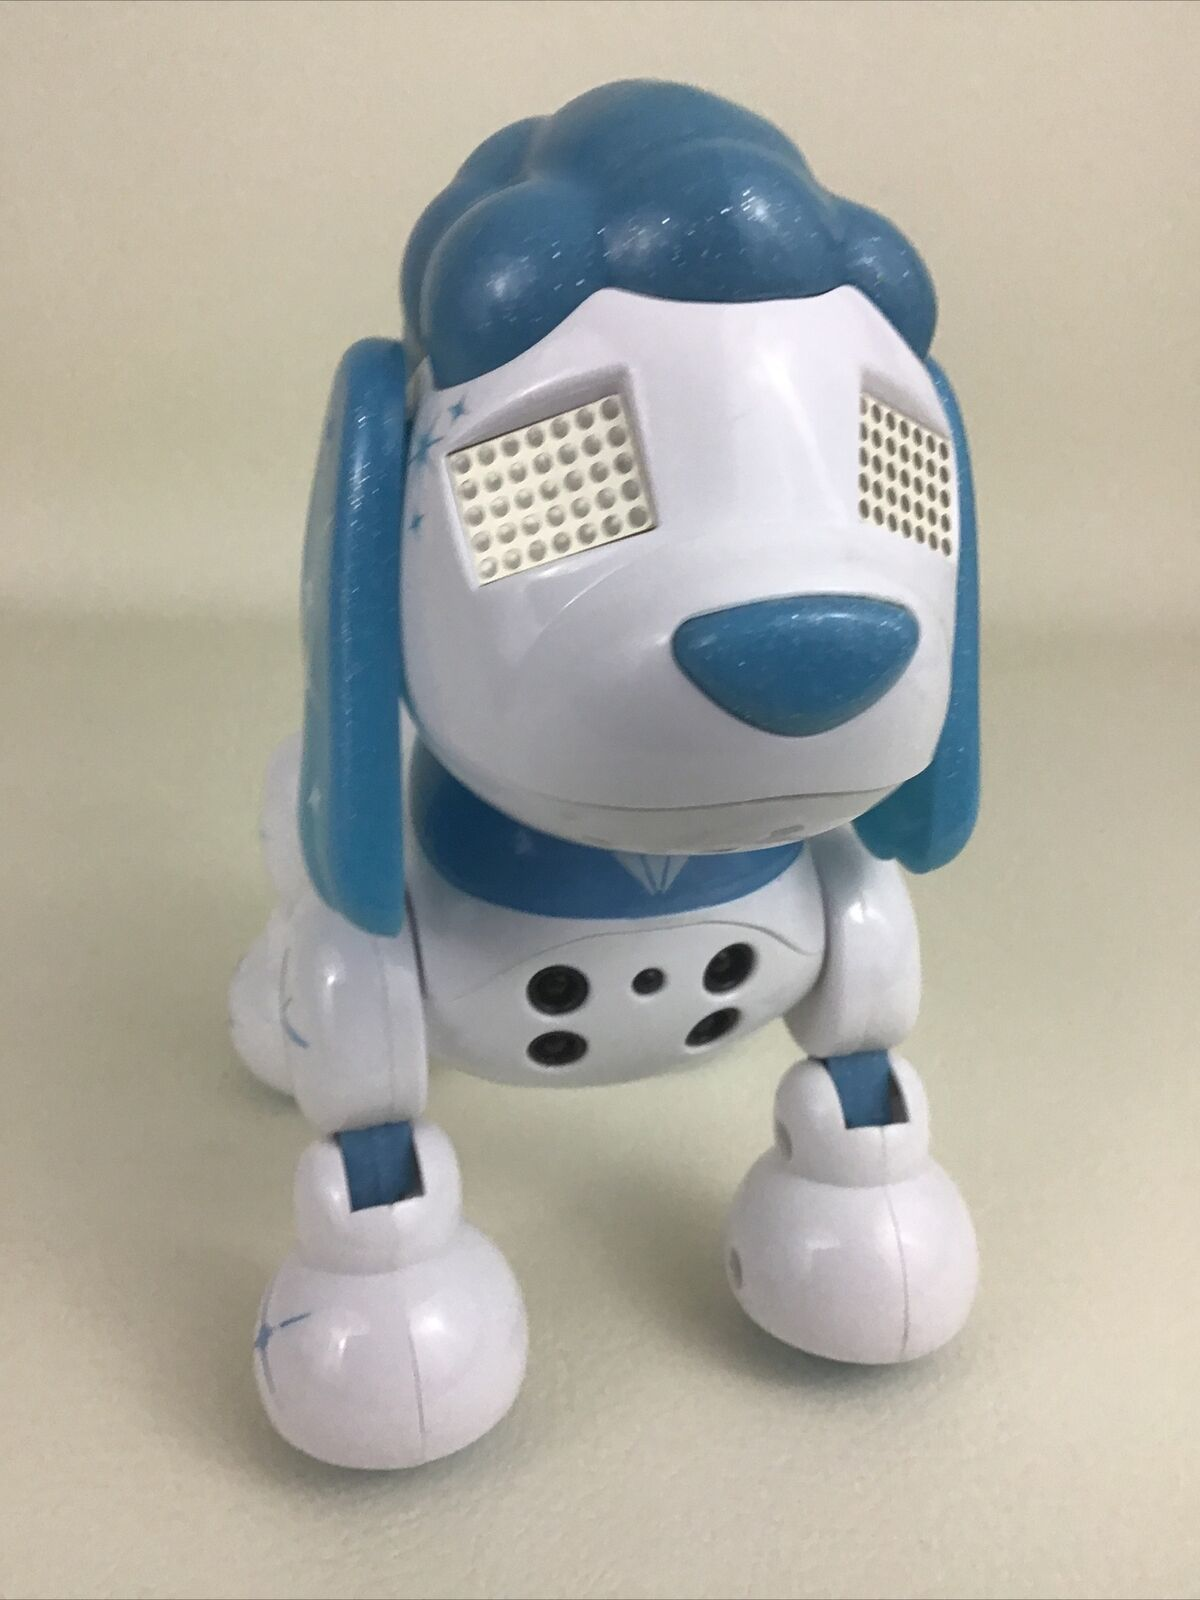 Zoomer Zuppies Interactive Dog Robot Diamond Your Personal Puppy Poodle 2015  - $34.60